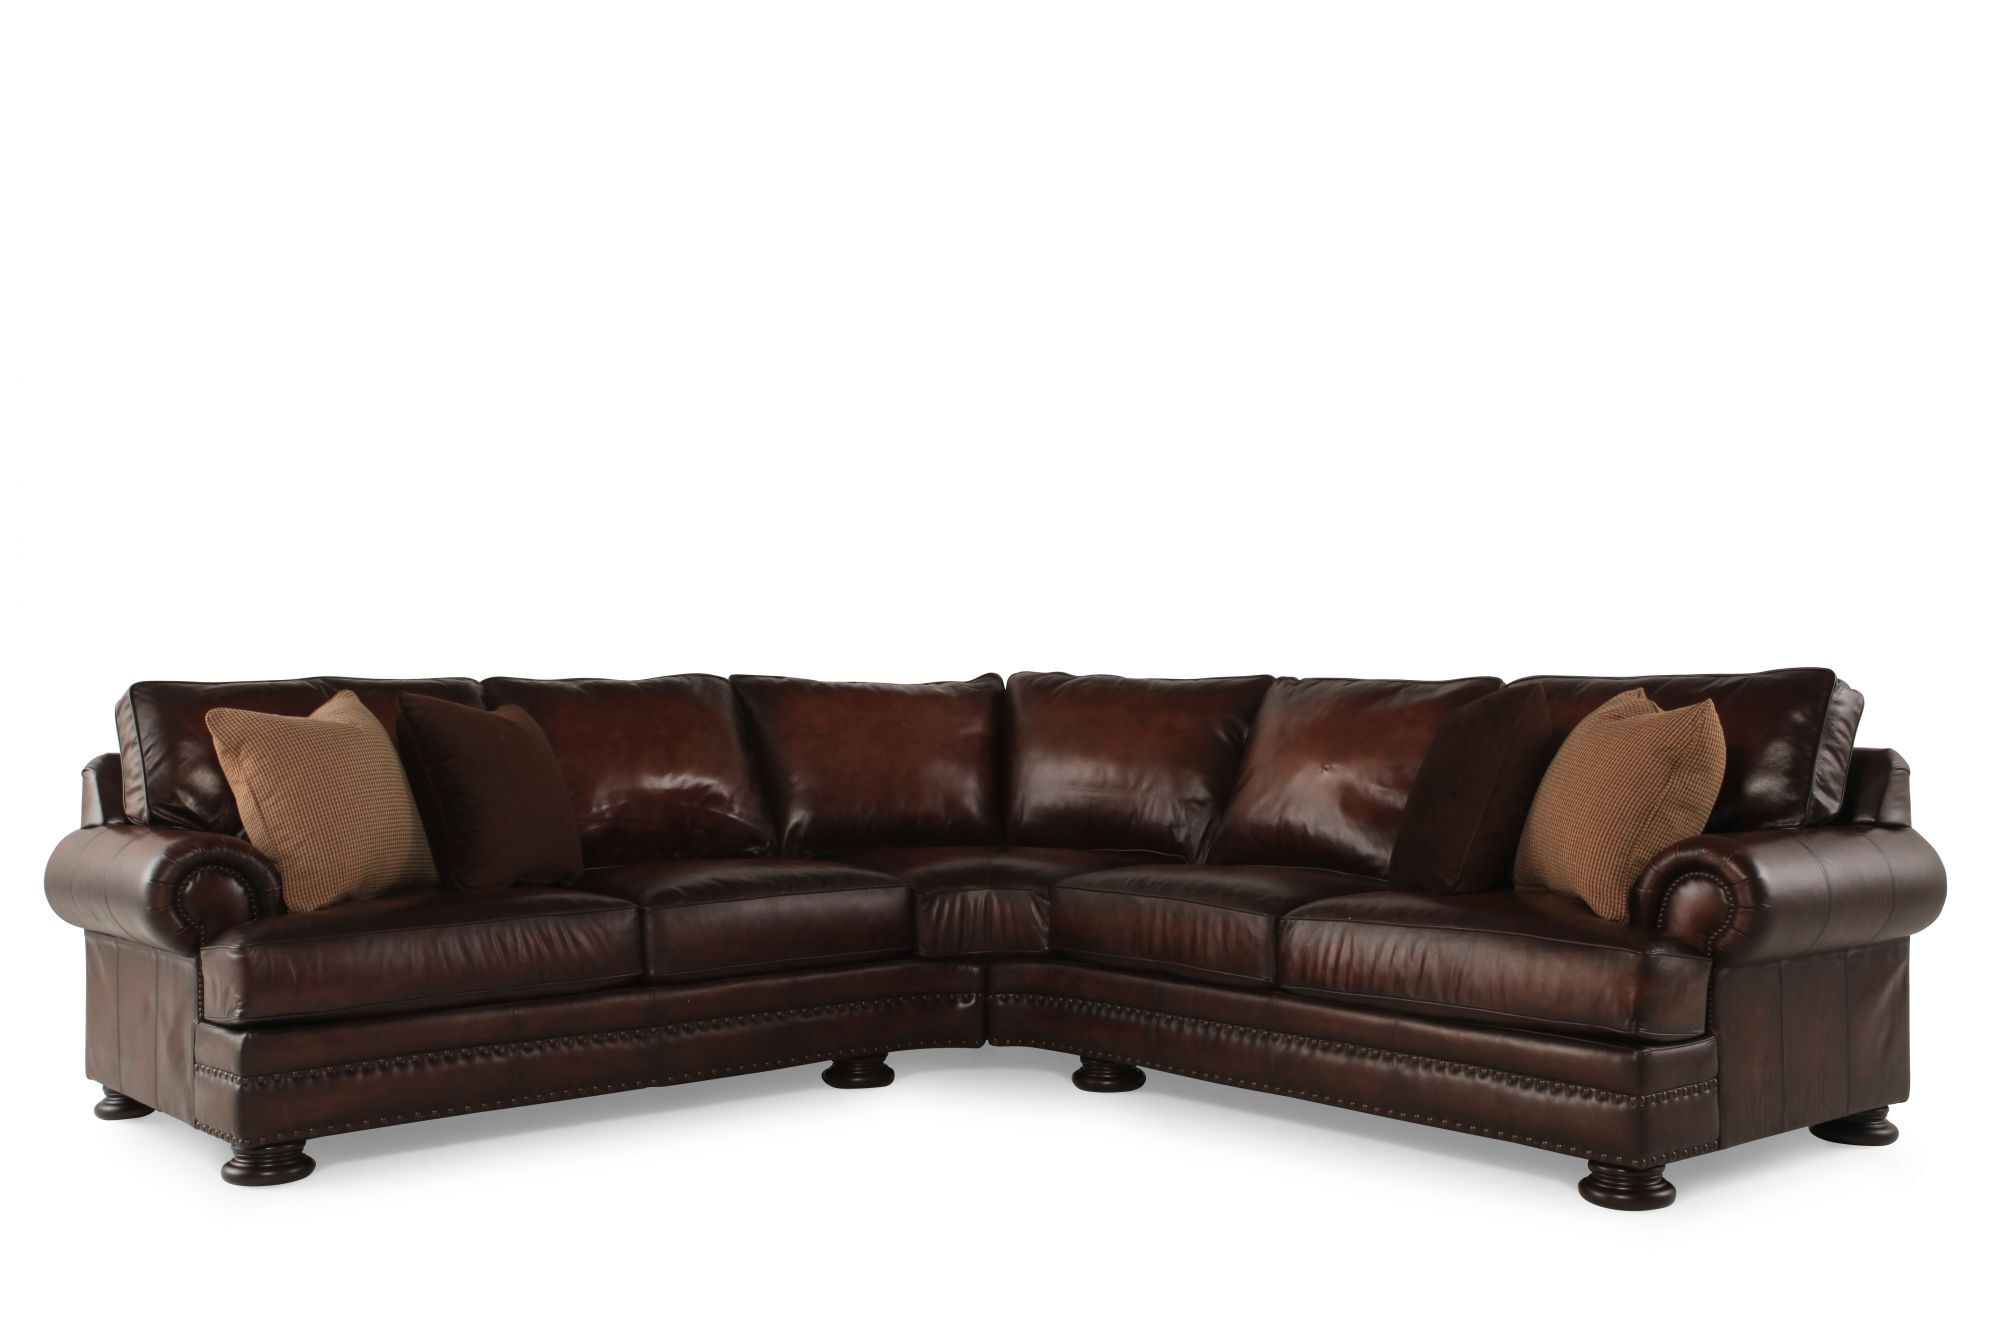 European Clic Nailhead Accented Leather 103 Sectional